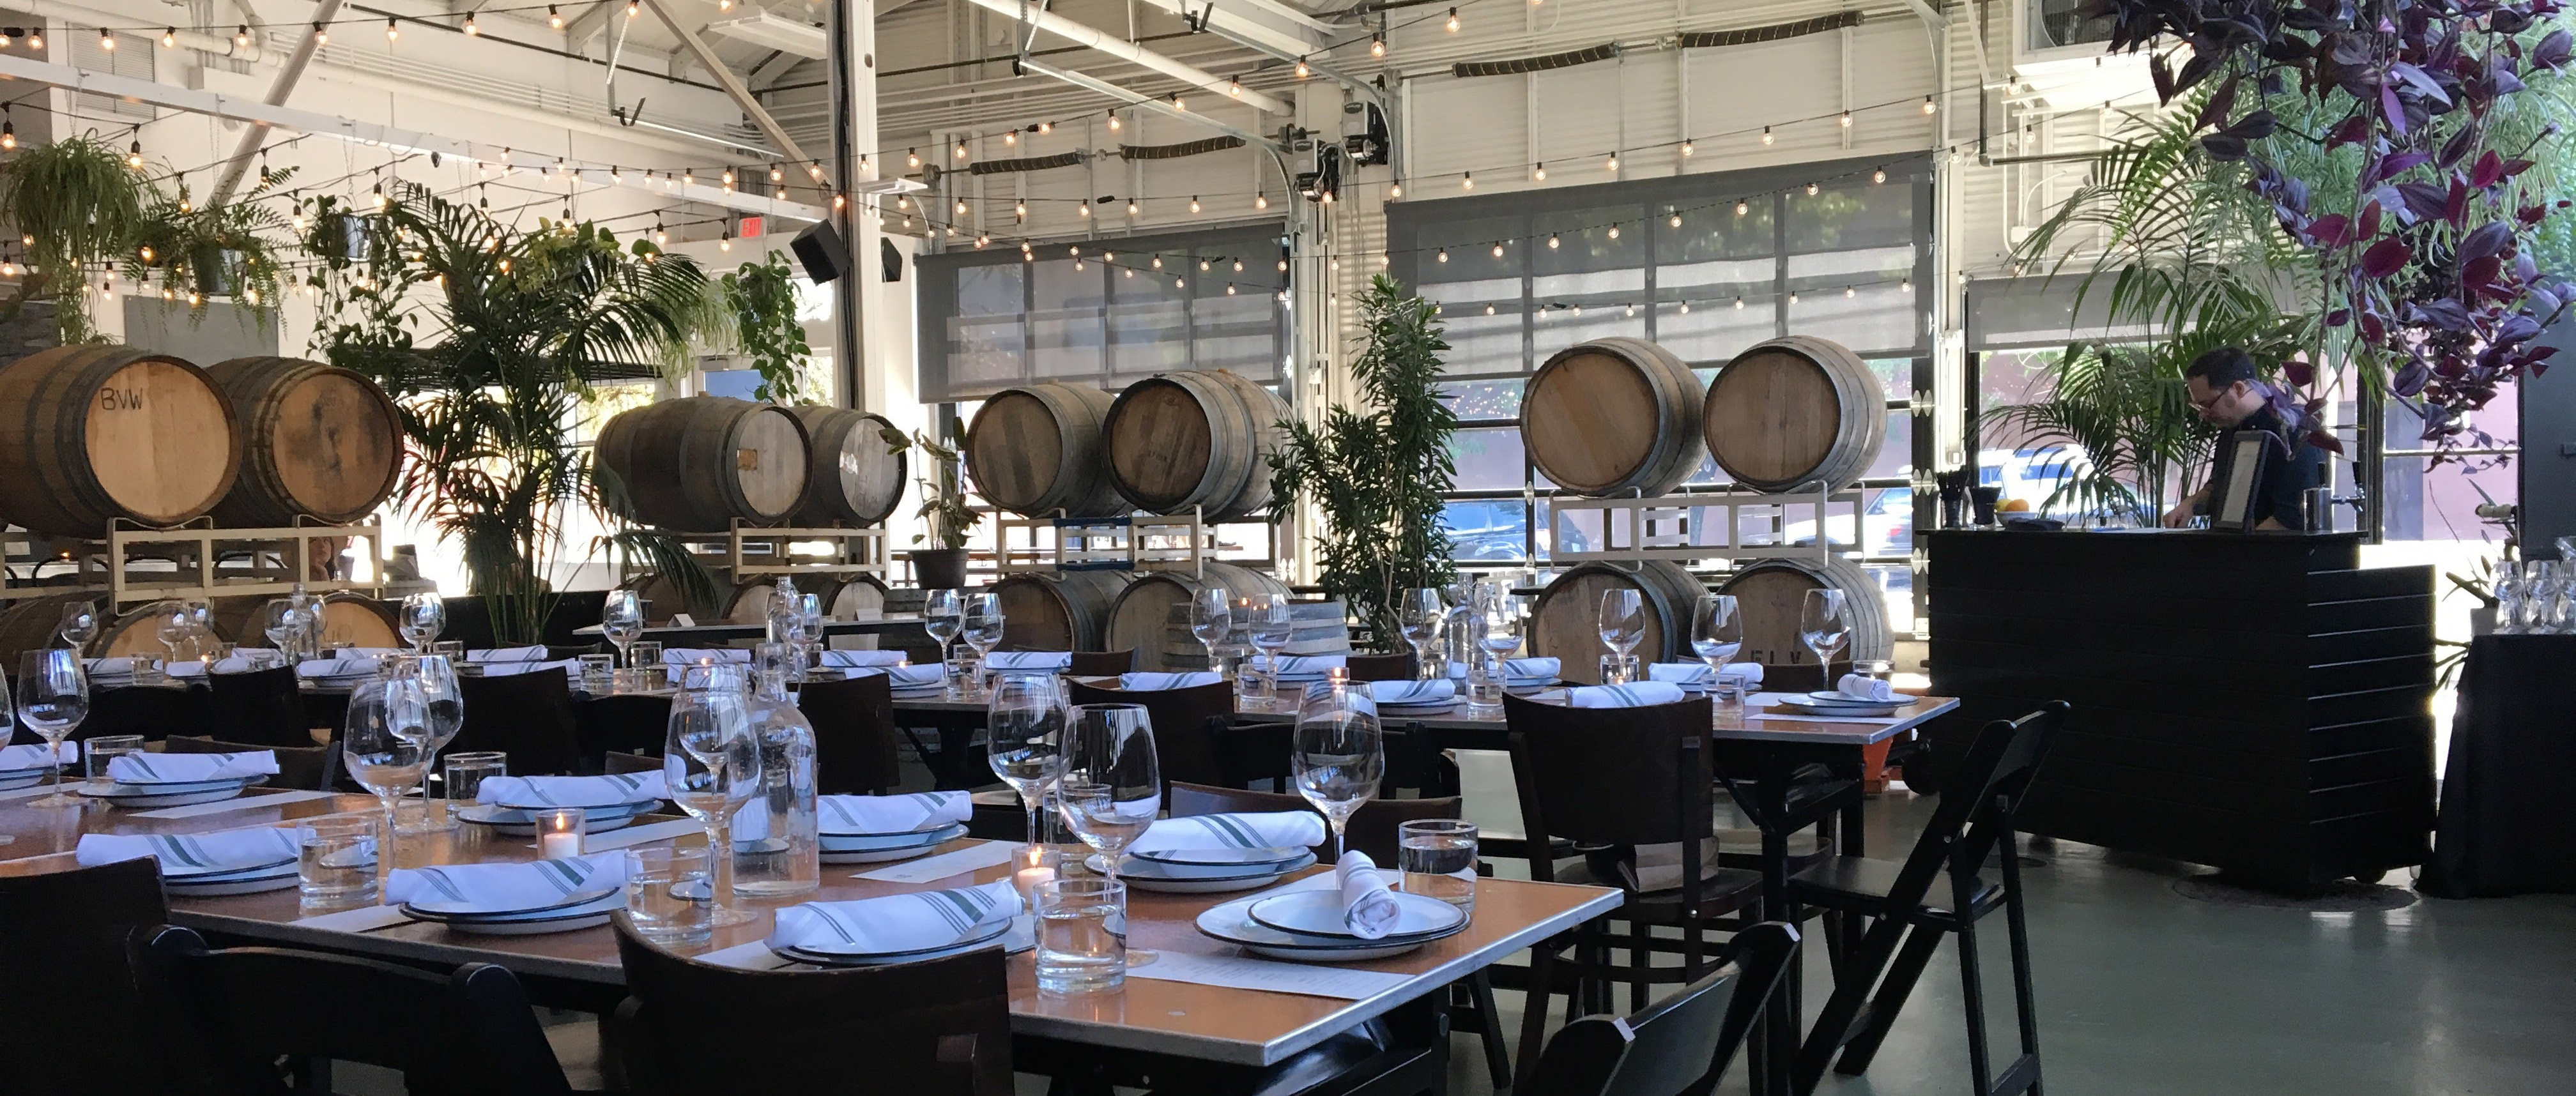 Barrel_Room_Coopers_Hall_Events_Wedding_Event_Business_Meeting_Daytime_Party_-_edited